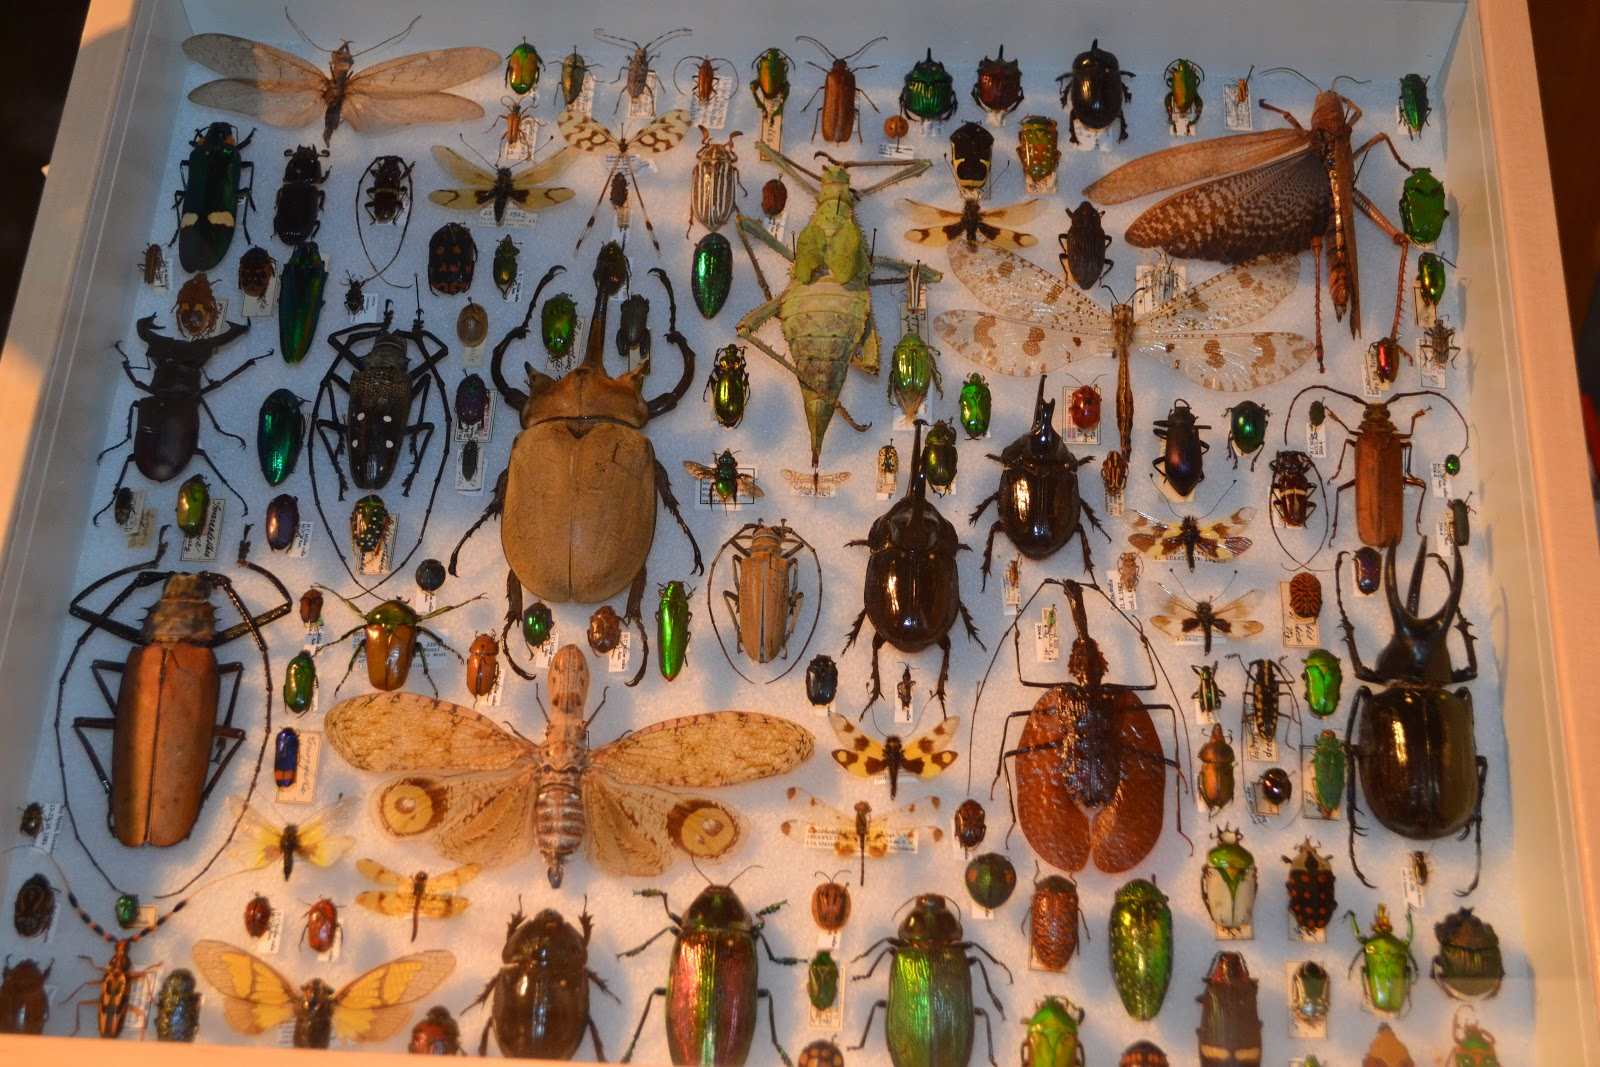 The Museum Houses Thousands Of Pinned Arthropods In Addition To The Live  Butterflies.